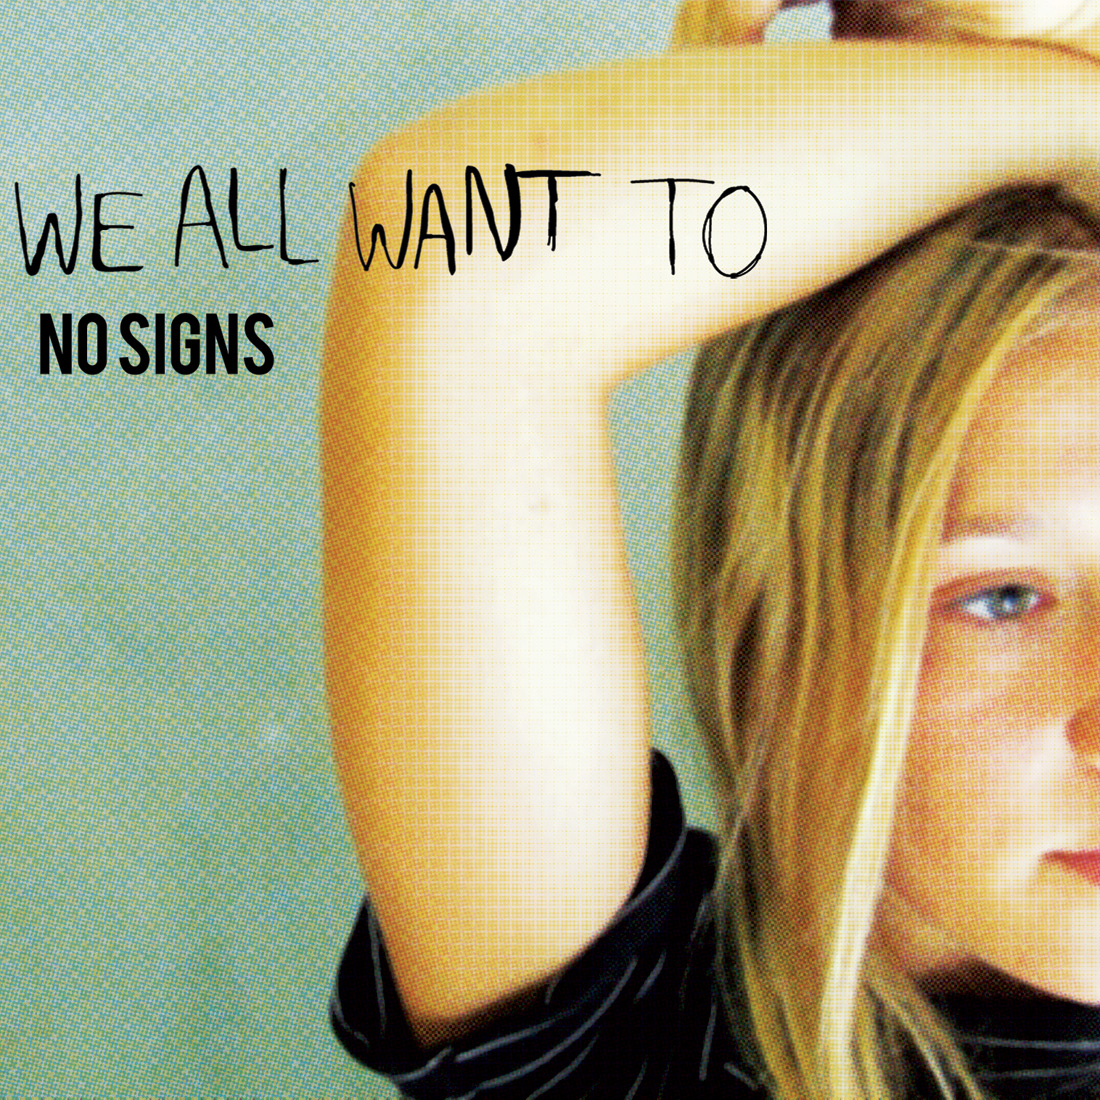 WE ALL WANT TO – No Signs